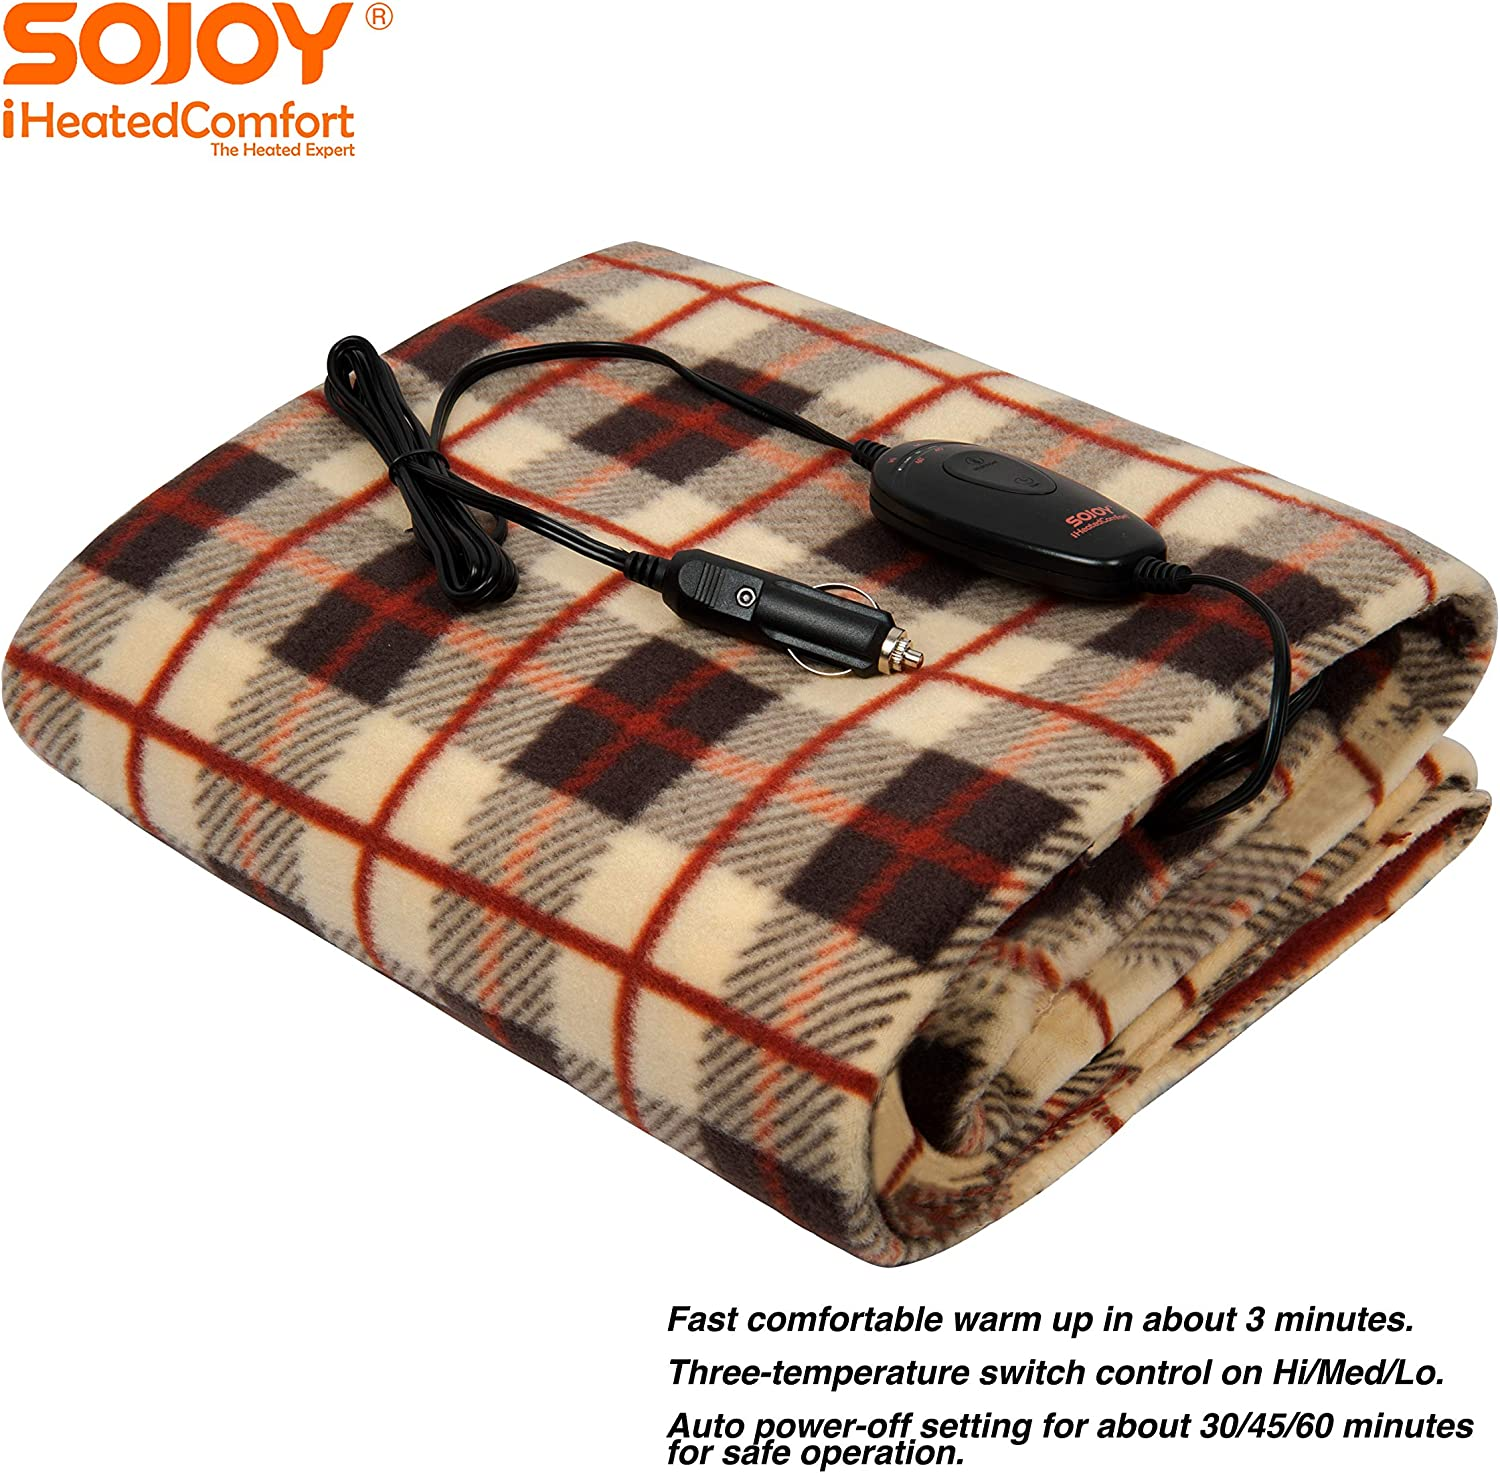 "Sojoy 12V Heated Smart Multifunctional Travel Electric Blanket for Car, Truck, Boats or RV with High/Low Temp Control (60""x 40"") (Checkered Cream & Tan)"